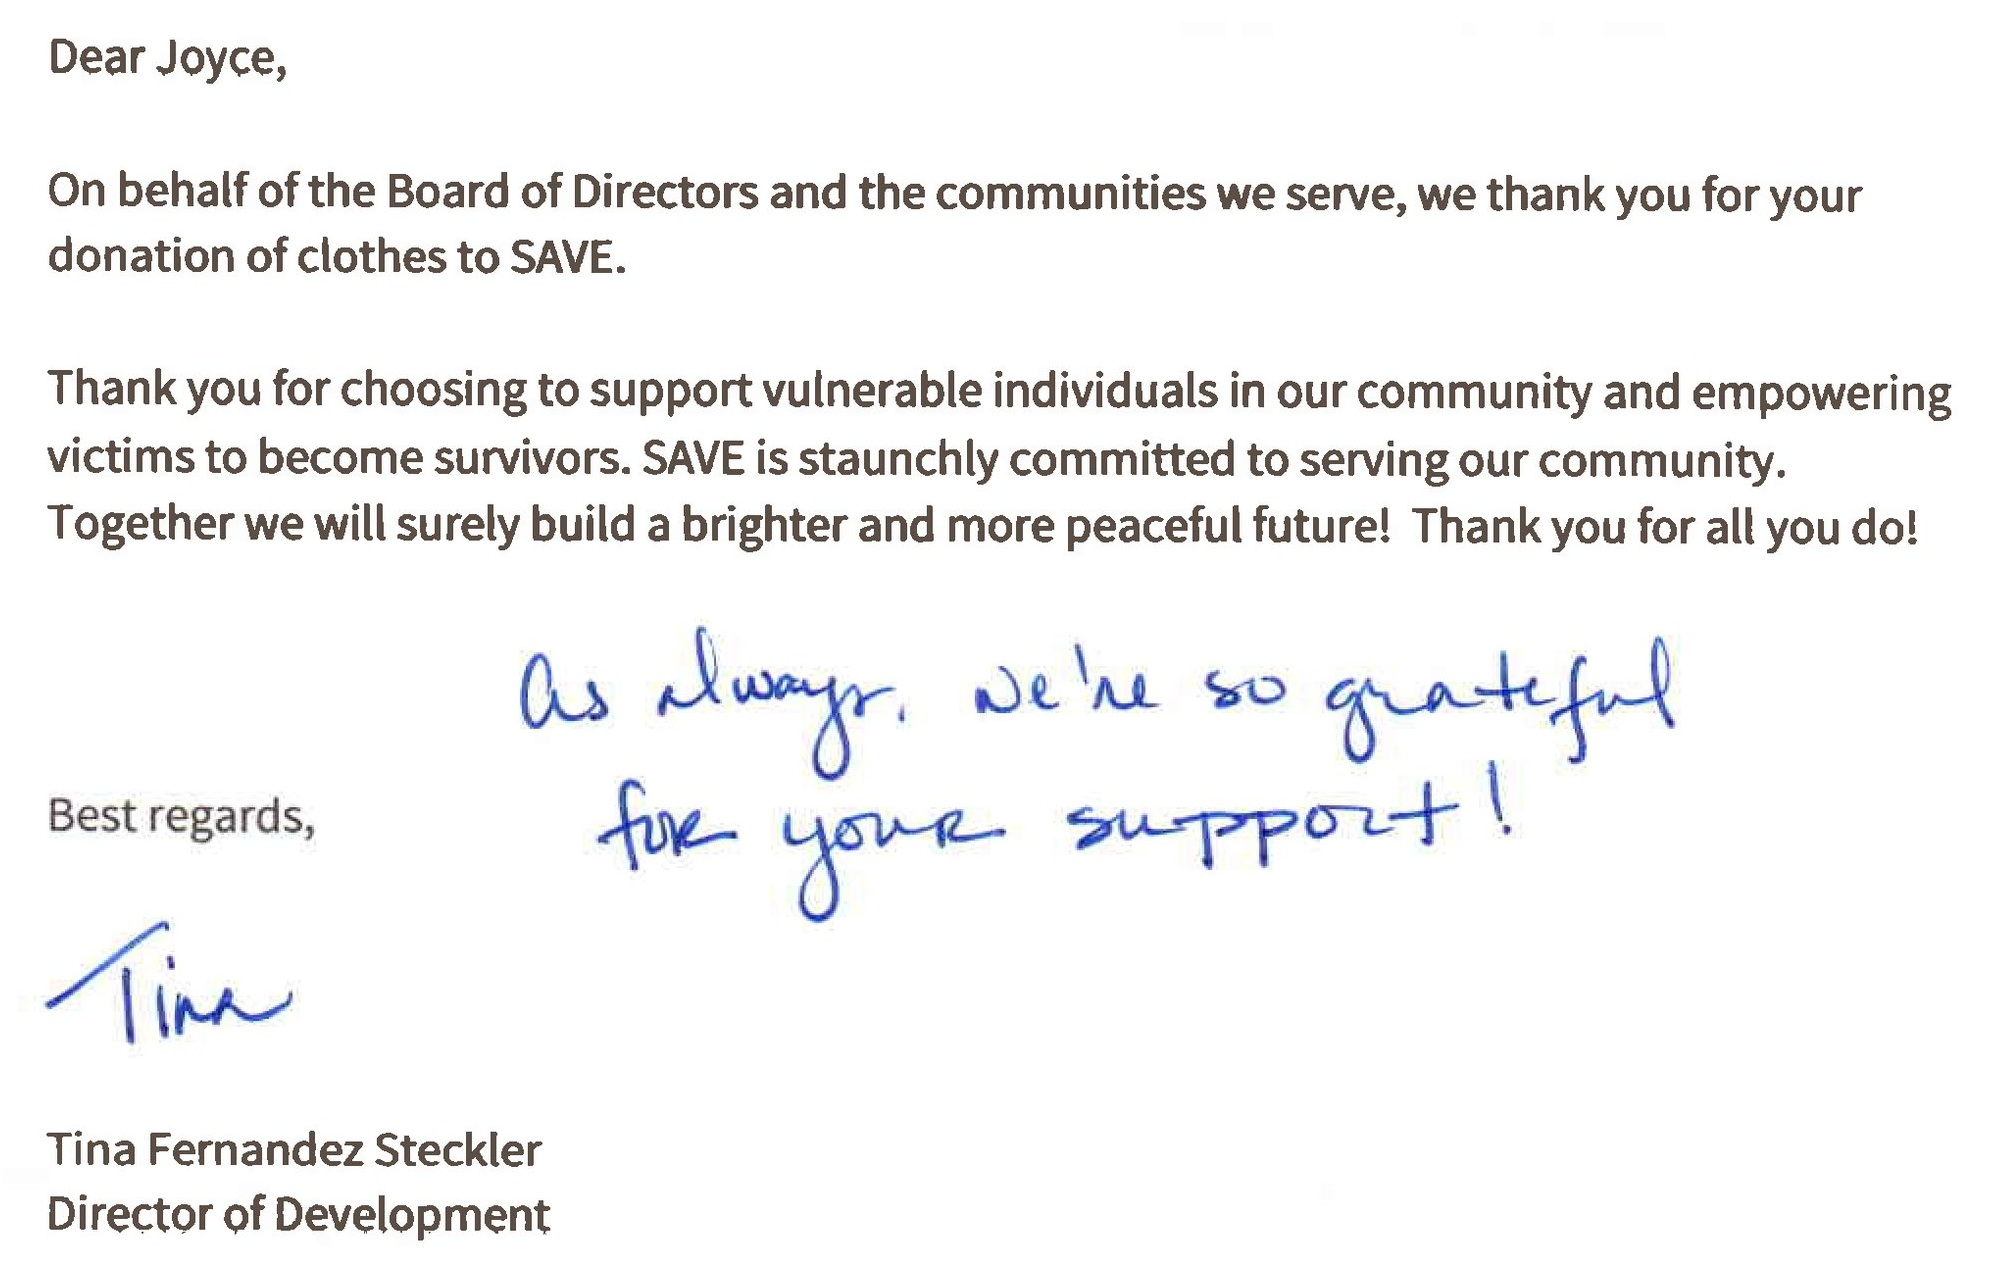 Thank You Letter from SAVE 9.20.17.jpg